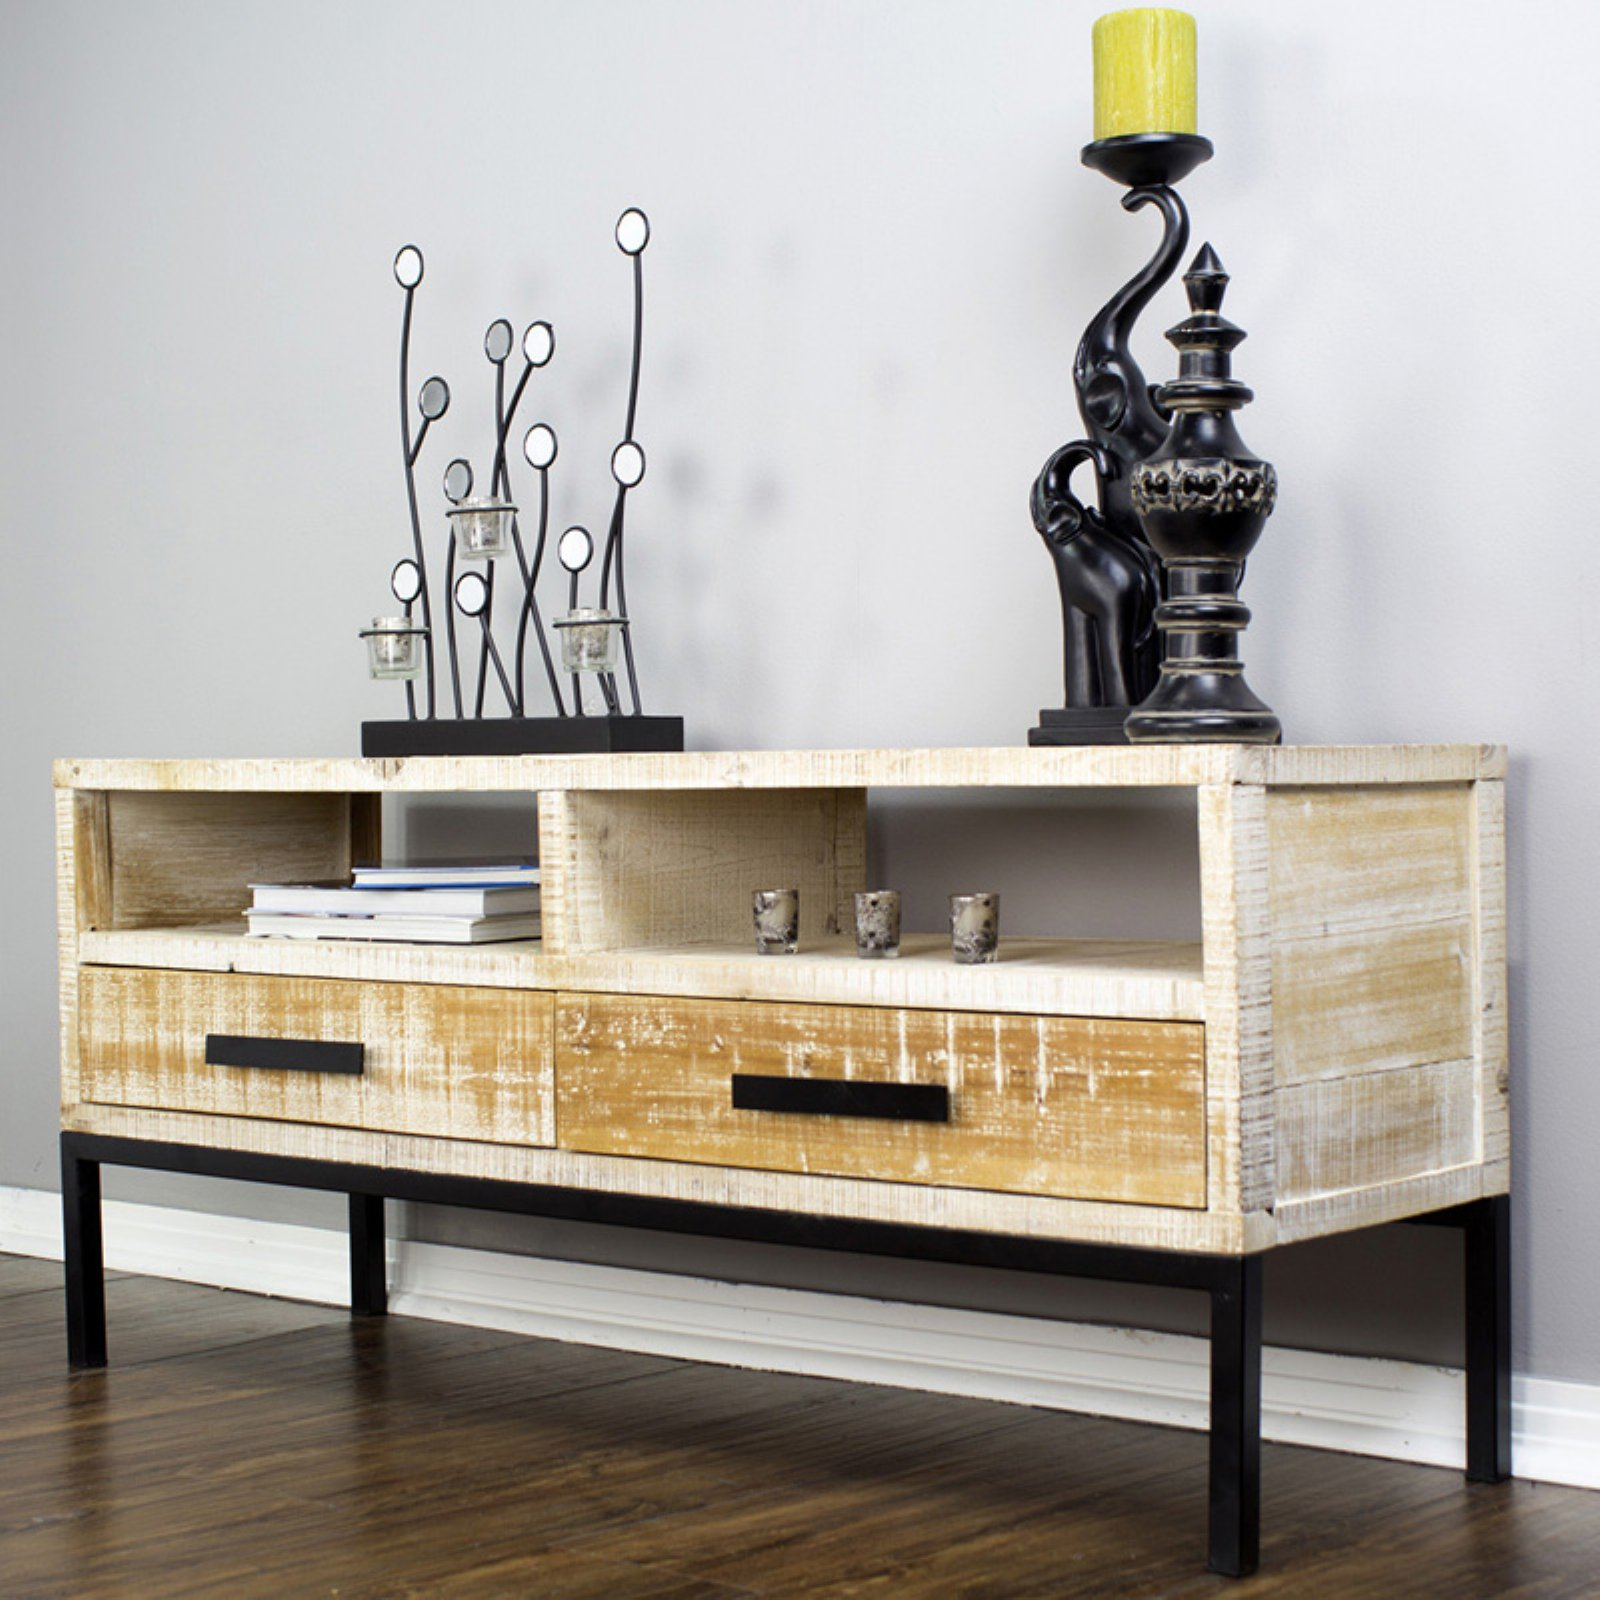 Heather Ann Creations Dillon 2 Shelf 2 Drawer TV Stand - Distressed Wood